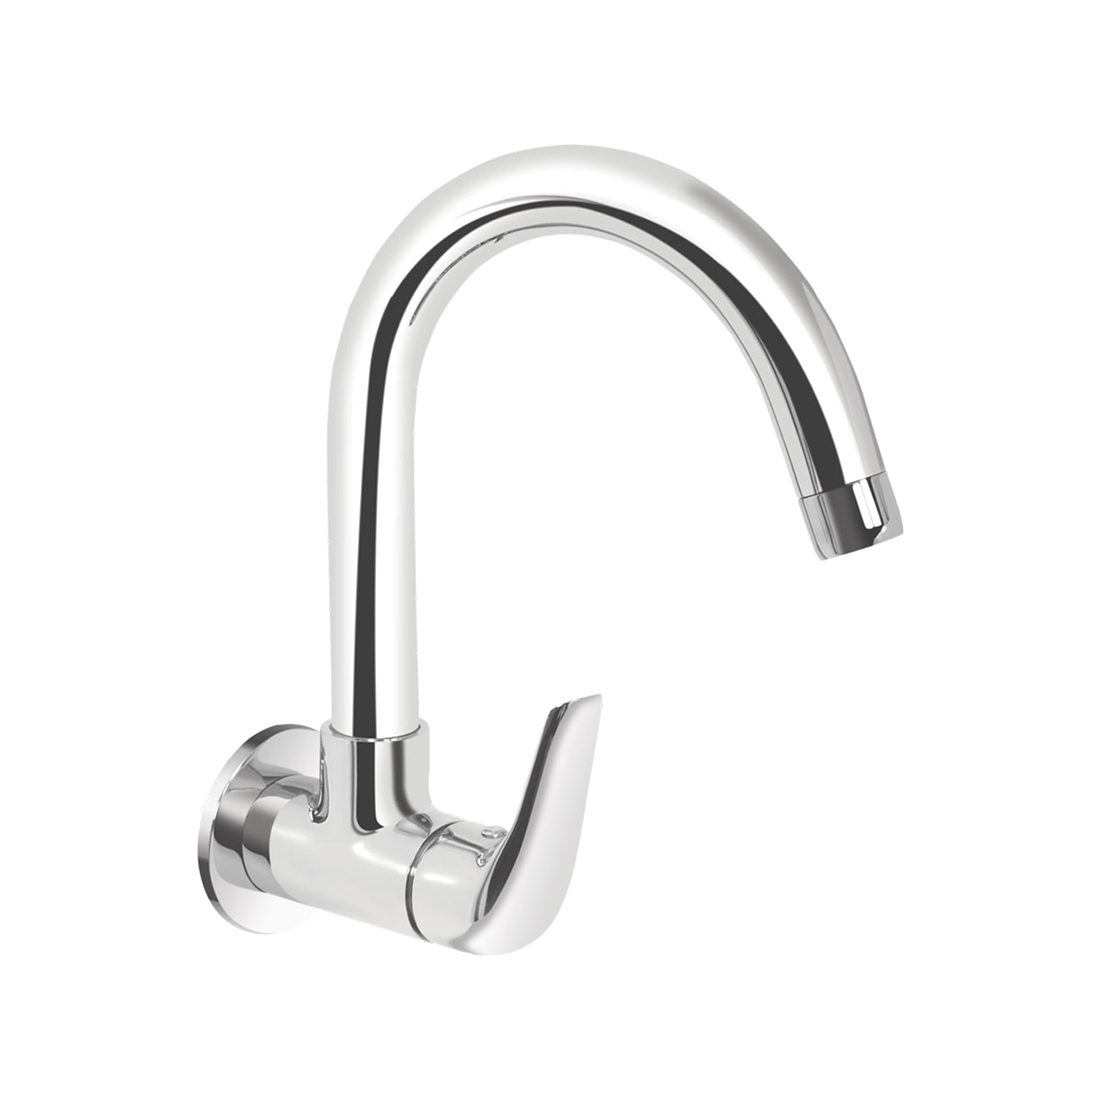 Kerovit Slope KB1311025 Sink Cock With Swivel Spout and Flange